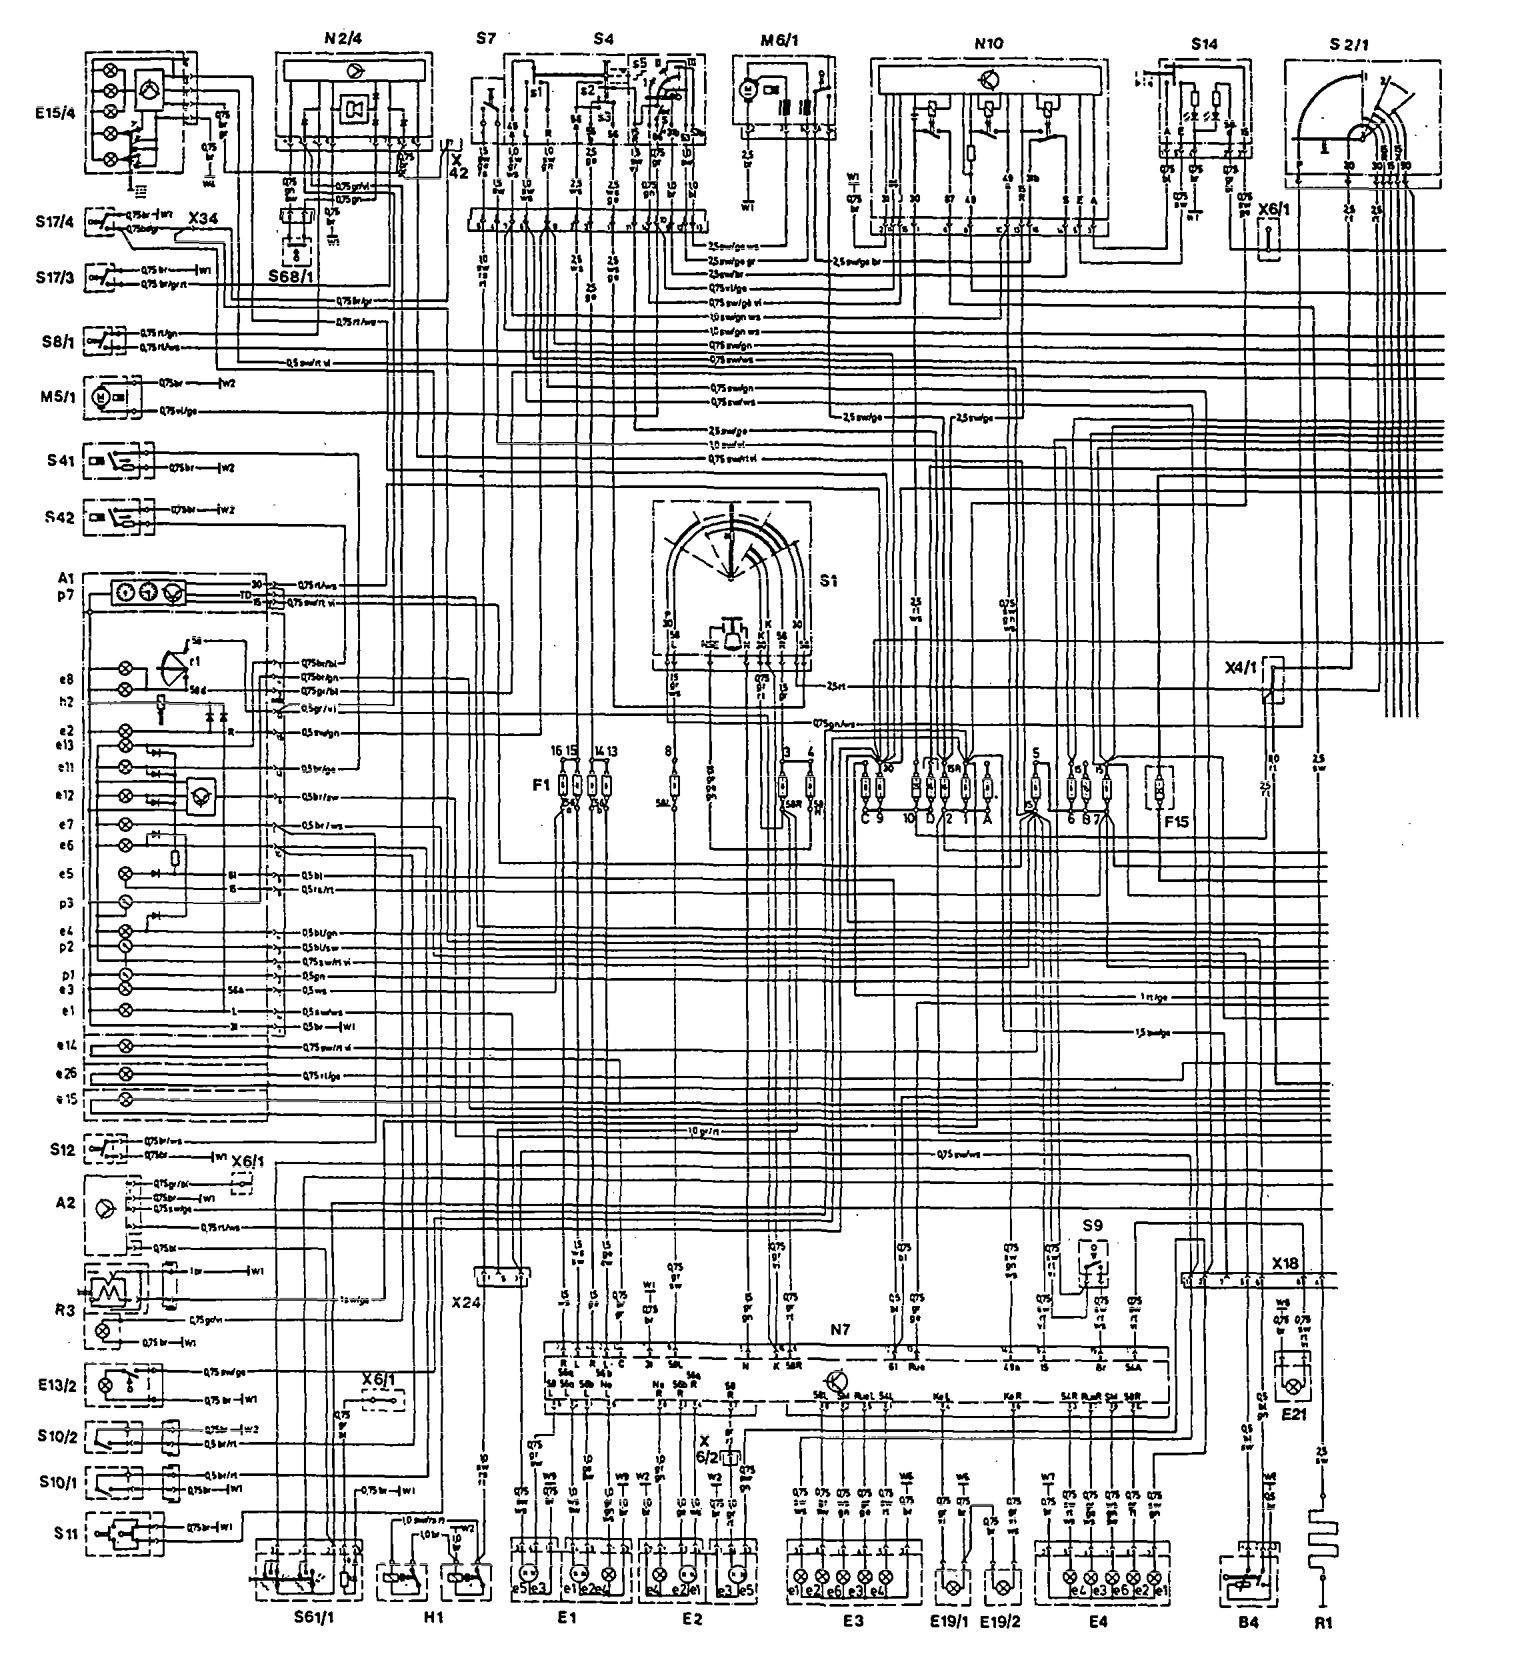 Wiring Diagram Mercedes Benz 300e Schematics Diagrams E320 Radio 1992 1993 Auto Parts